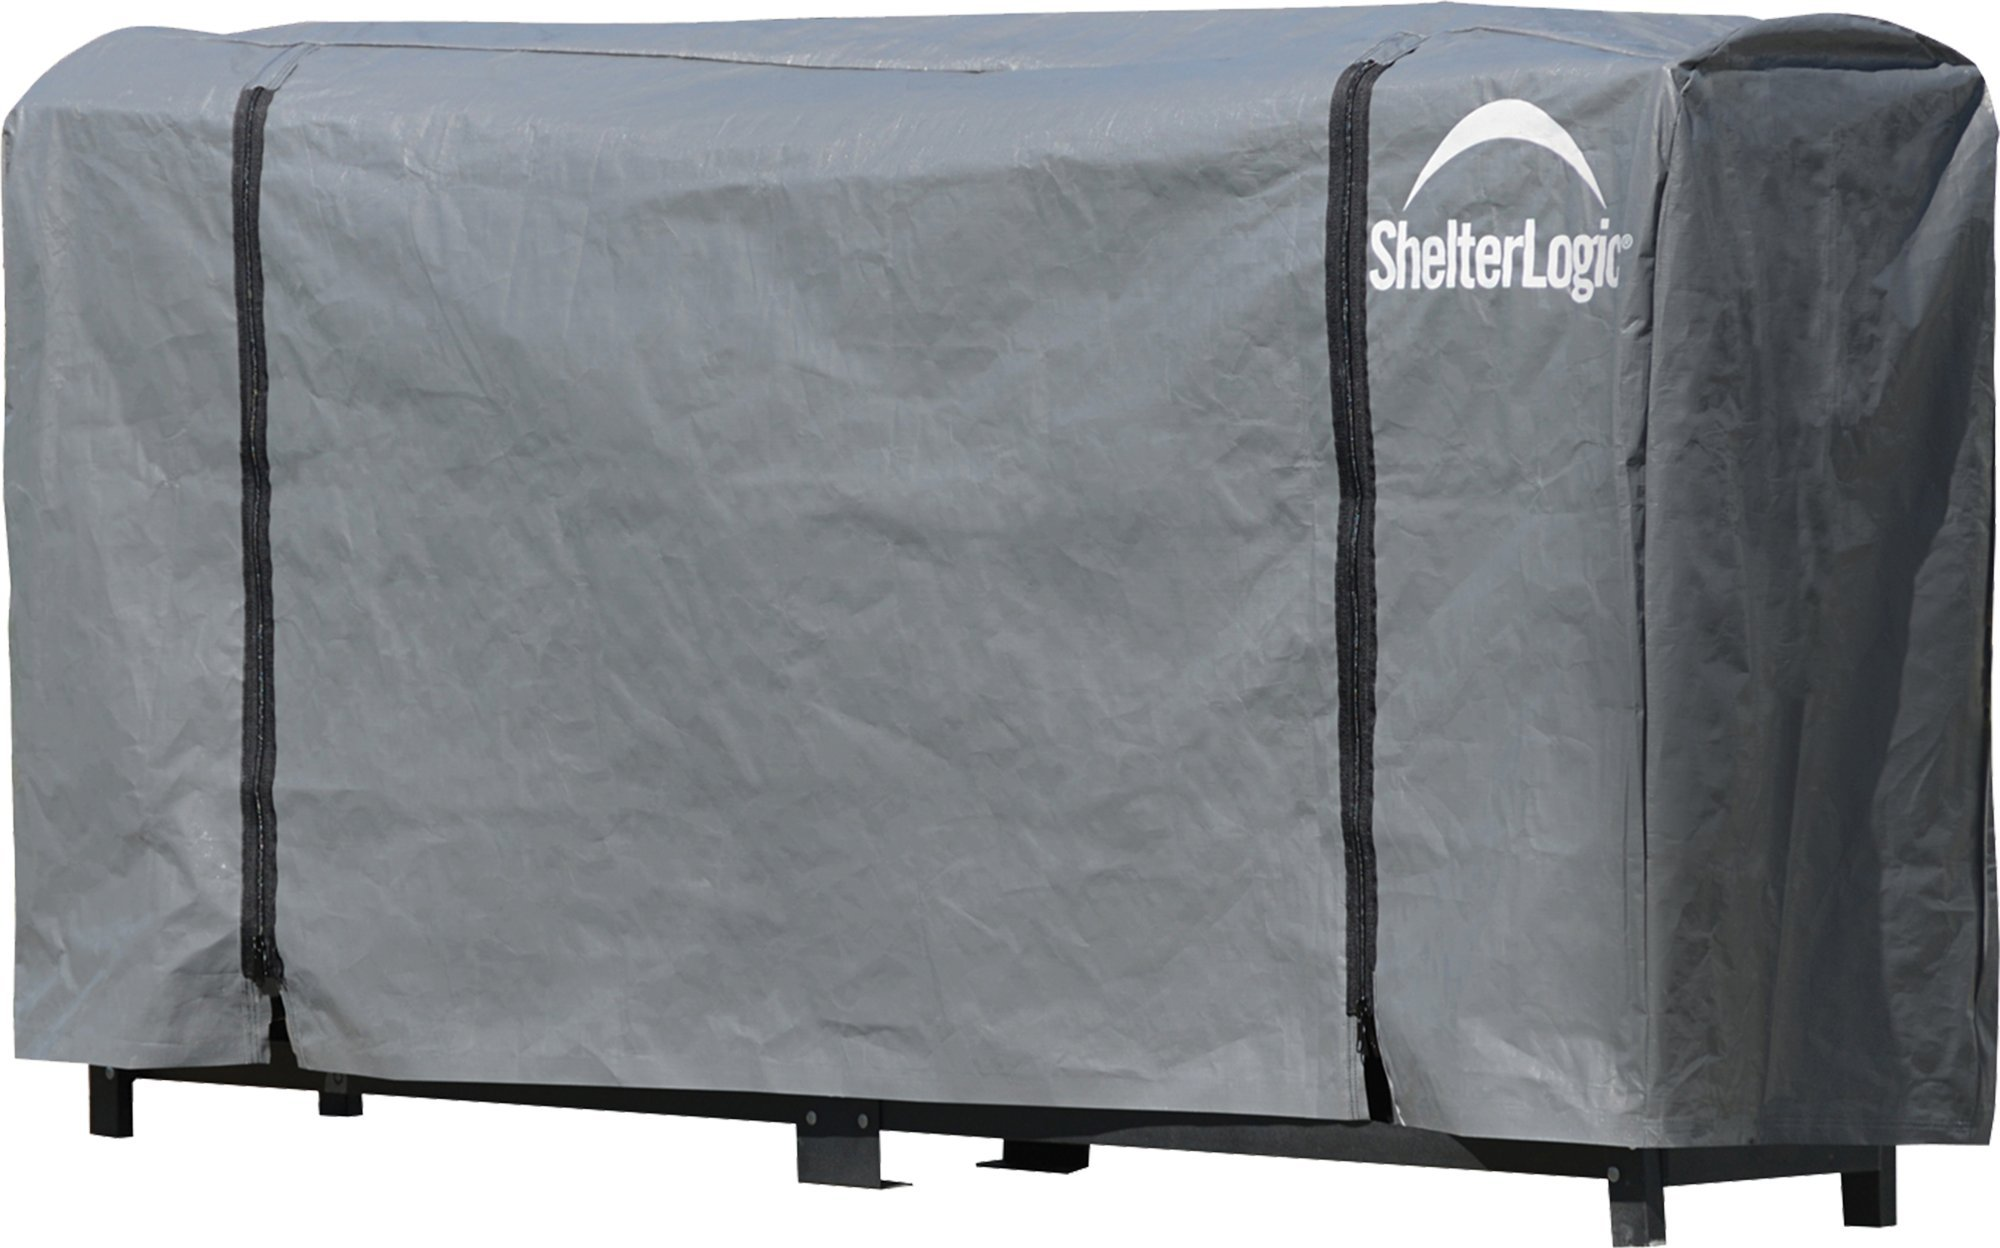 ShelterLogic Firewood Rack-in-a-Box  Universal Full Length Cover for Firewood Storage Racks, Fits Most 8-Feet Firewood Racks